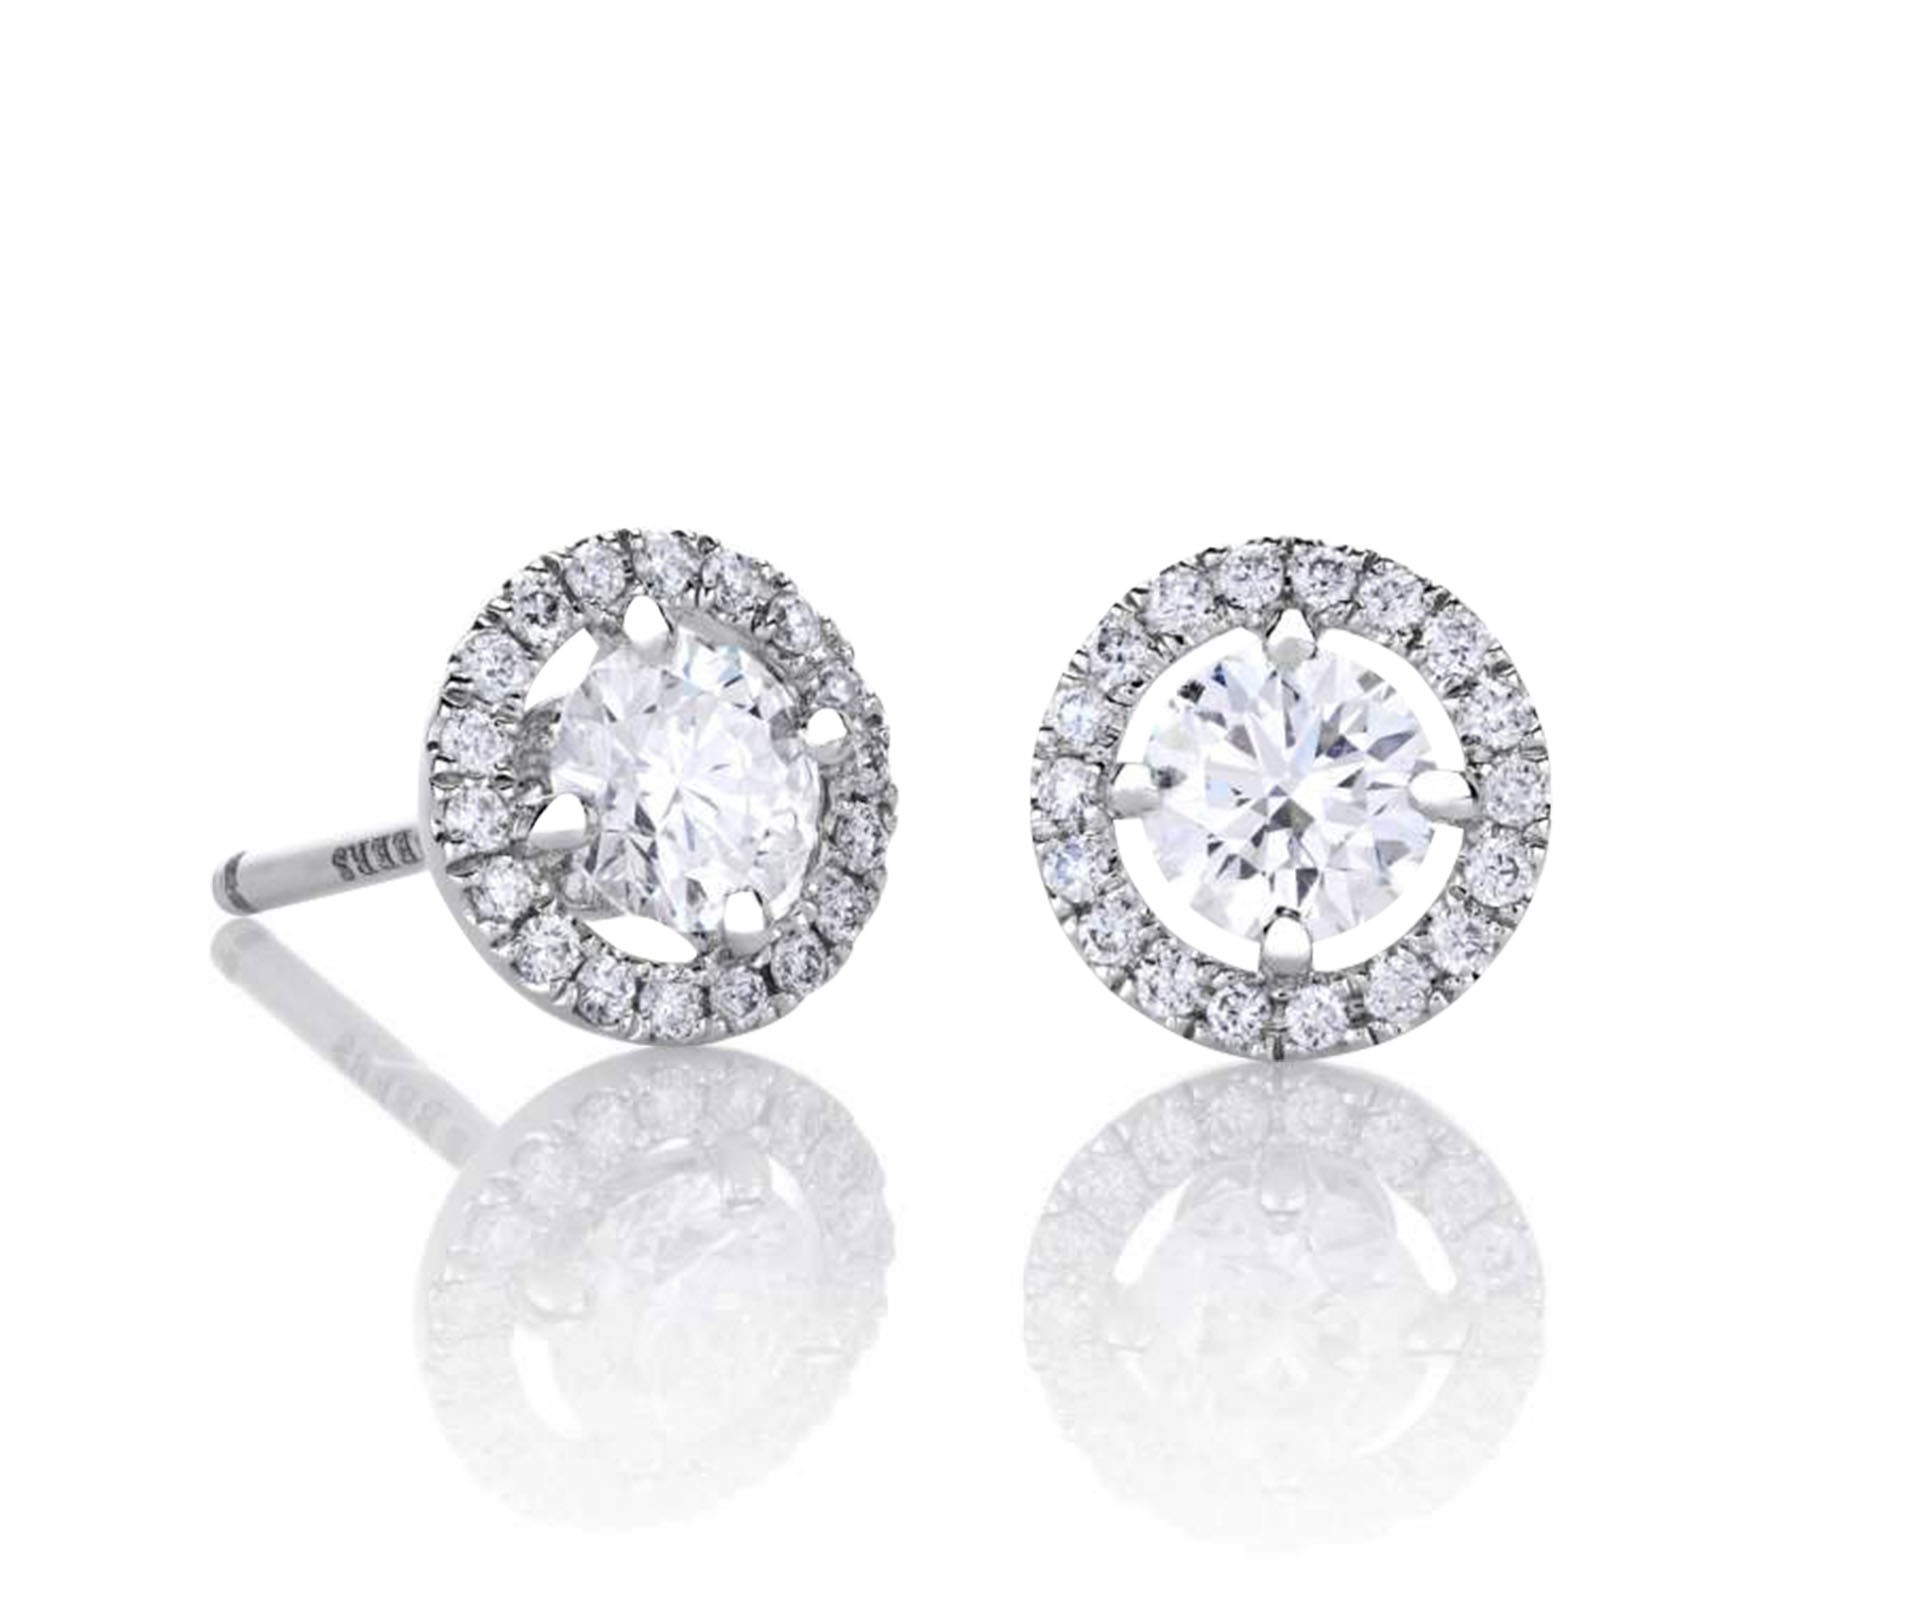 Small Diamond Stud Earrings Uk